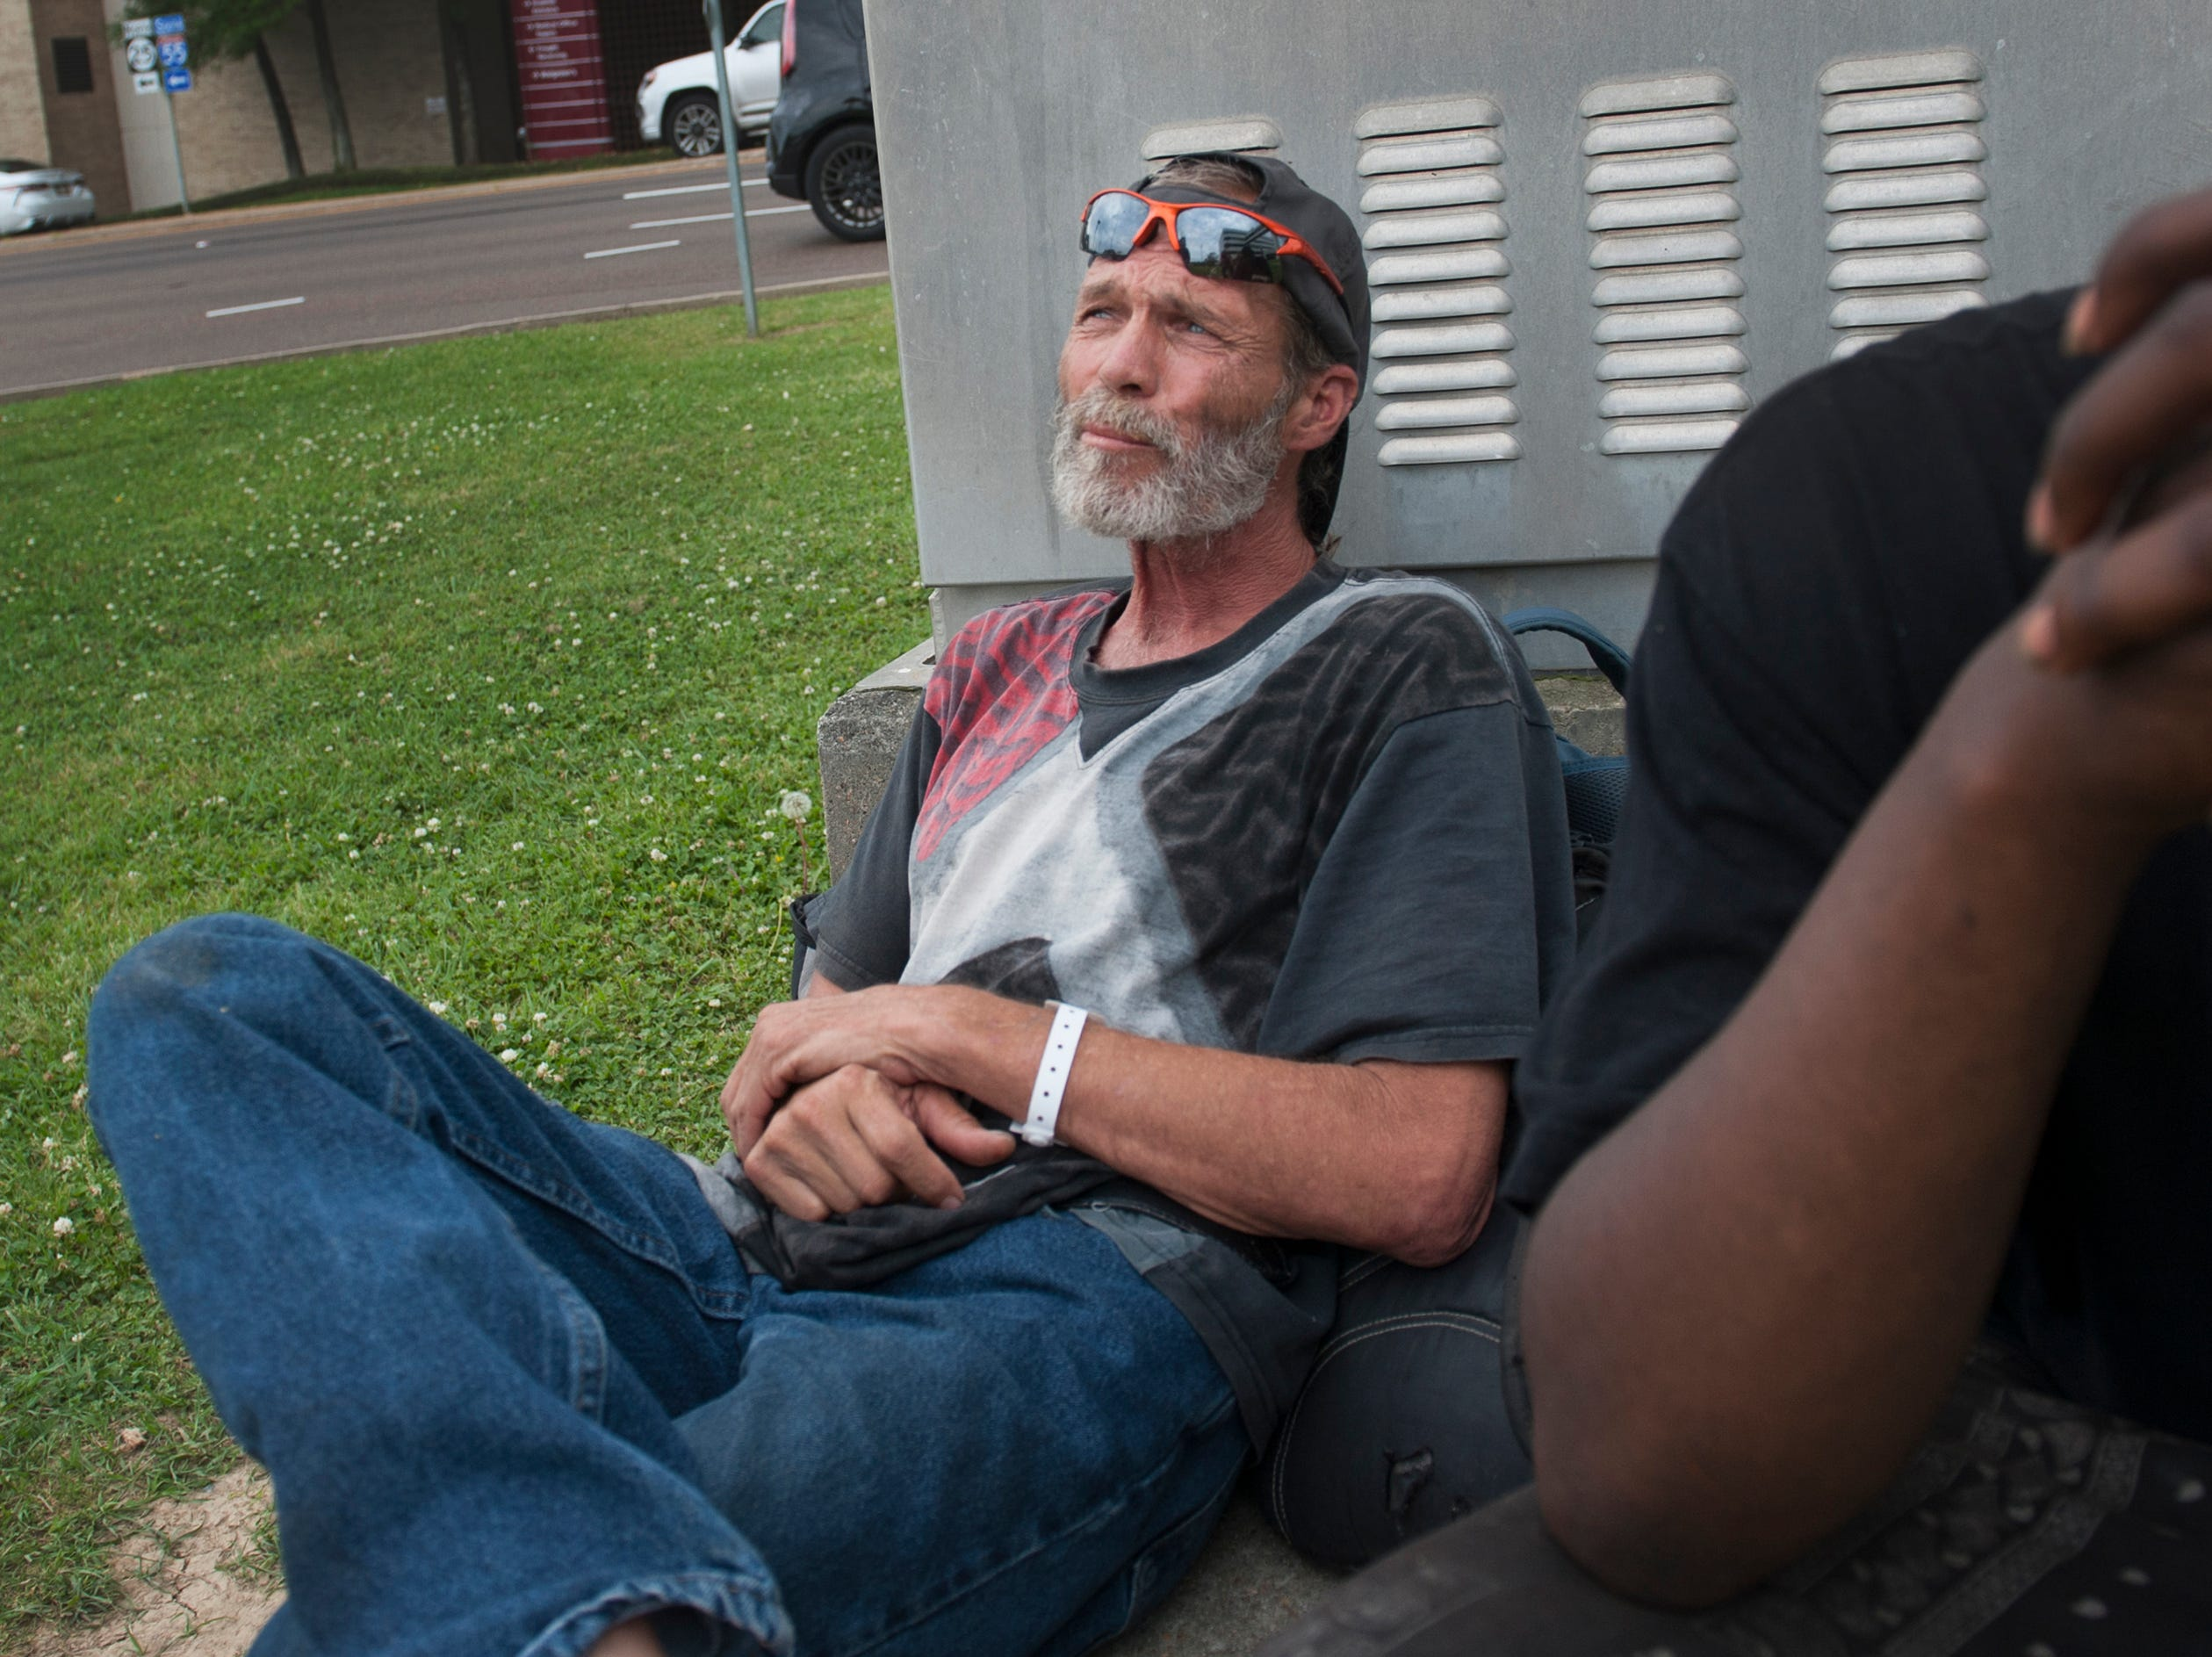 At the intersection of I-55 West Frontage Road and Lakeland Drive, Jeffery, 56, and a friend wait for Dan to finish at the corner across the street before they take his place.